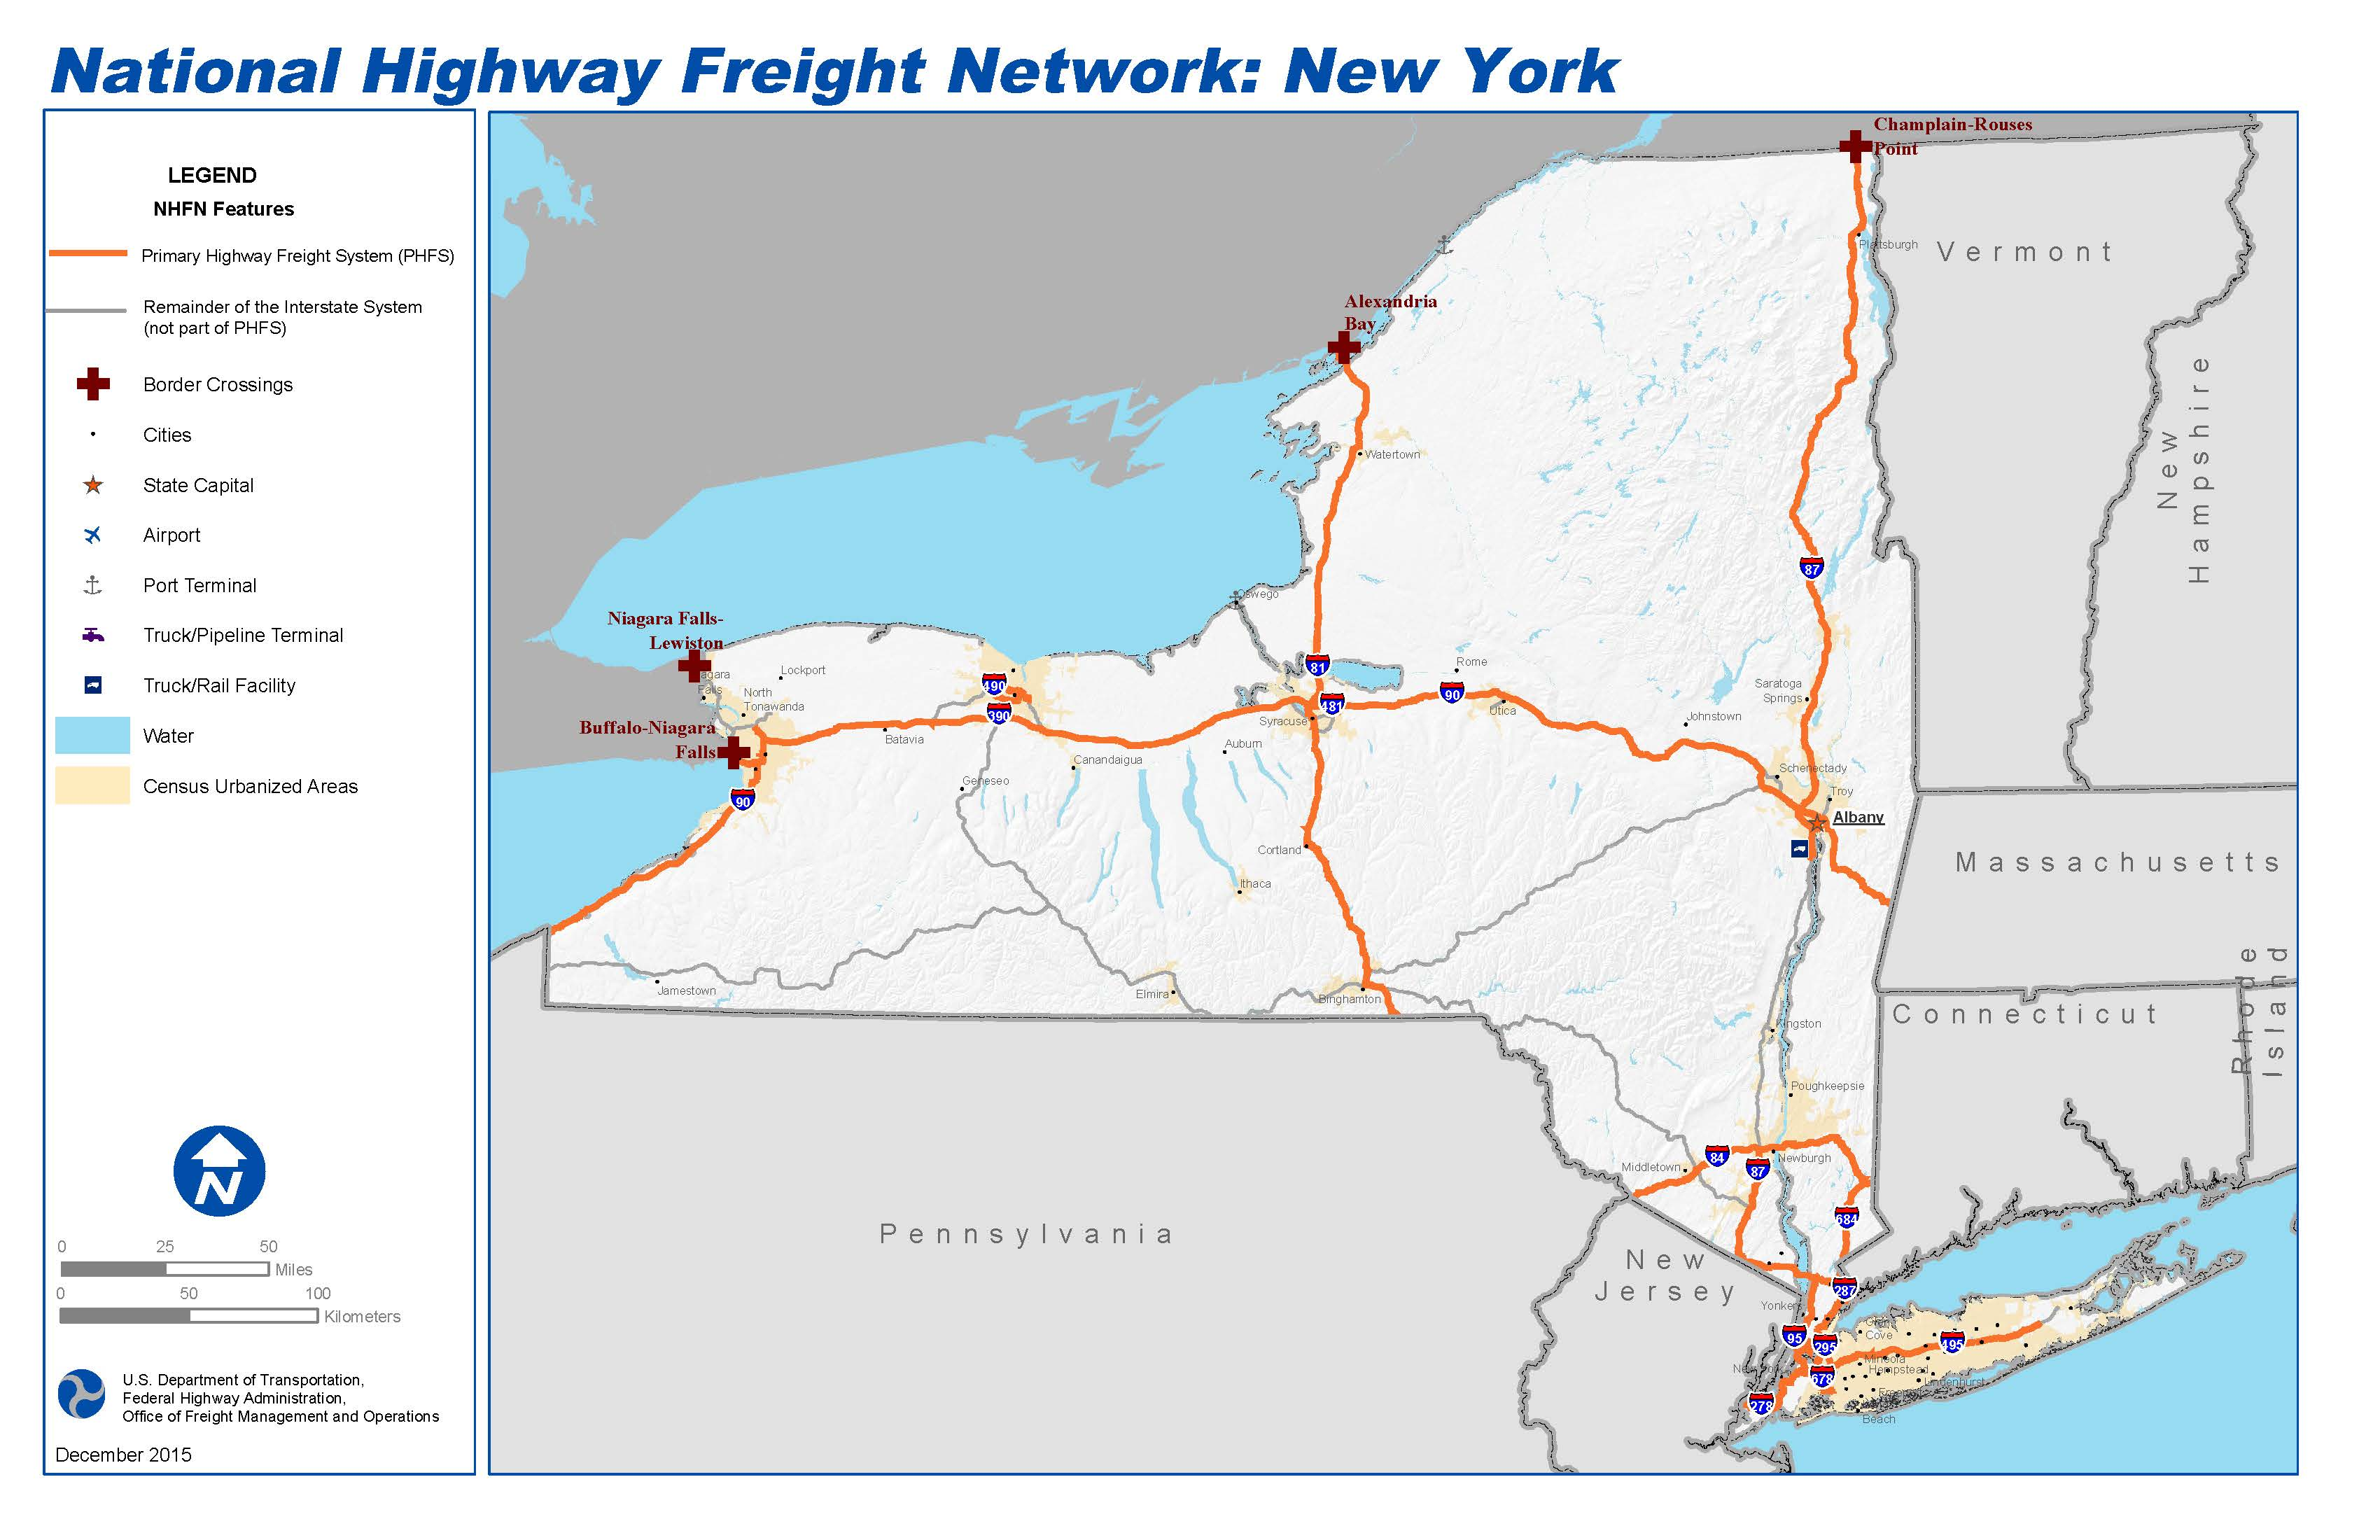 Map Of New York Highways.National Highway Freight Network Map And Tables For New York